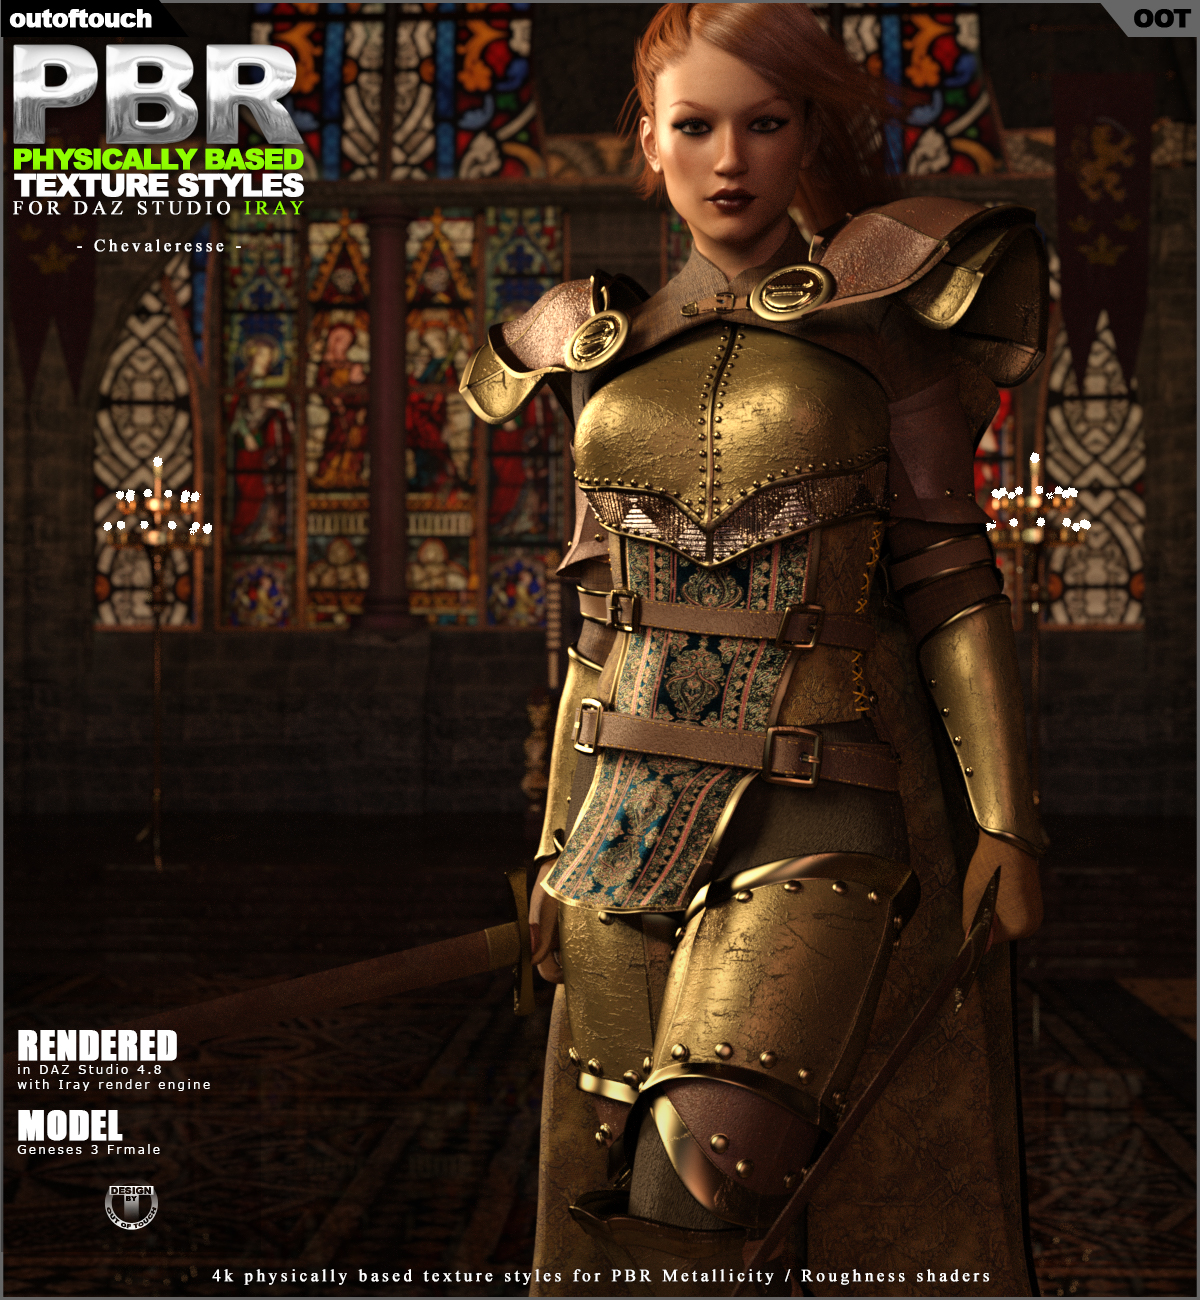 OOT PBR Texture Styles for Chevaleresse Armor